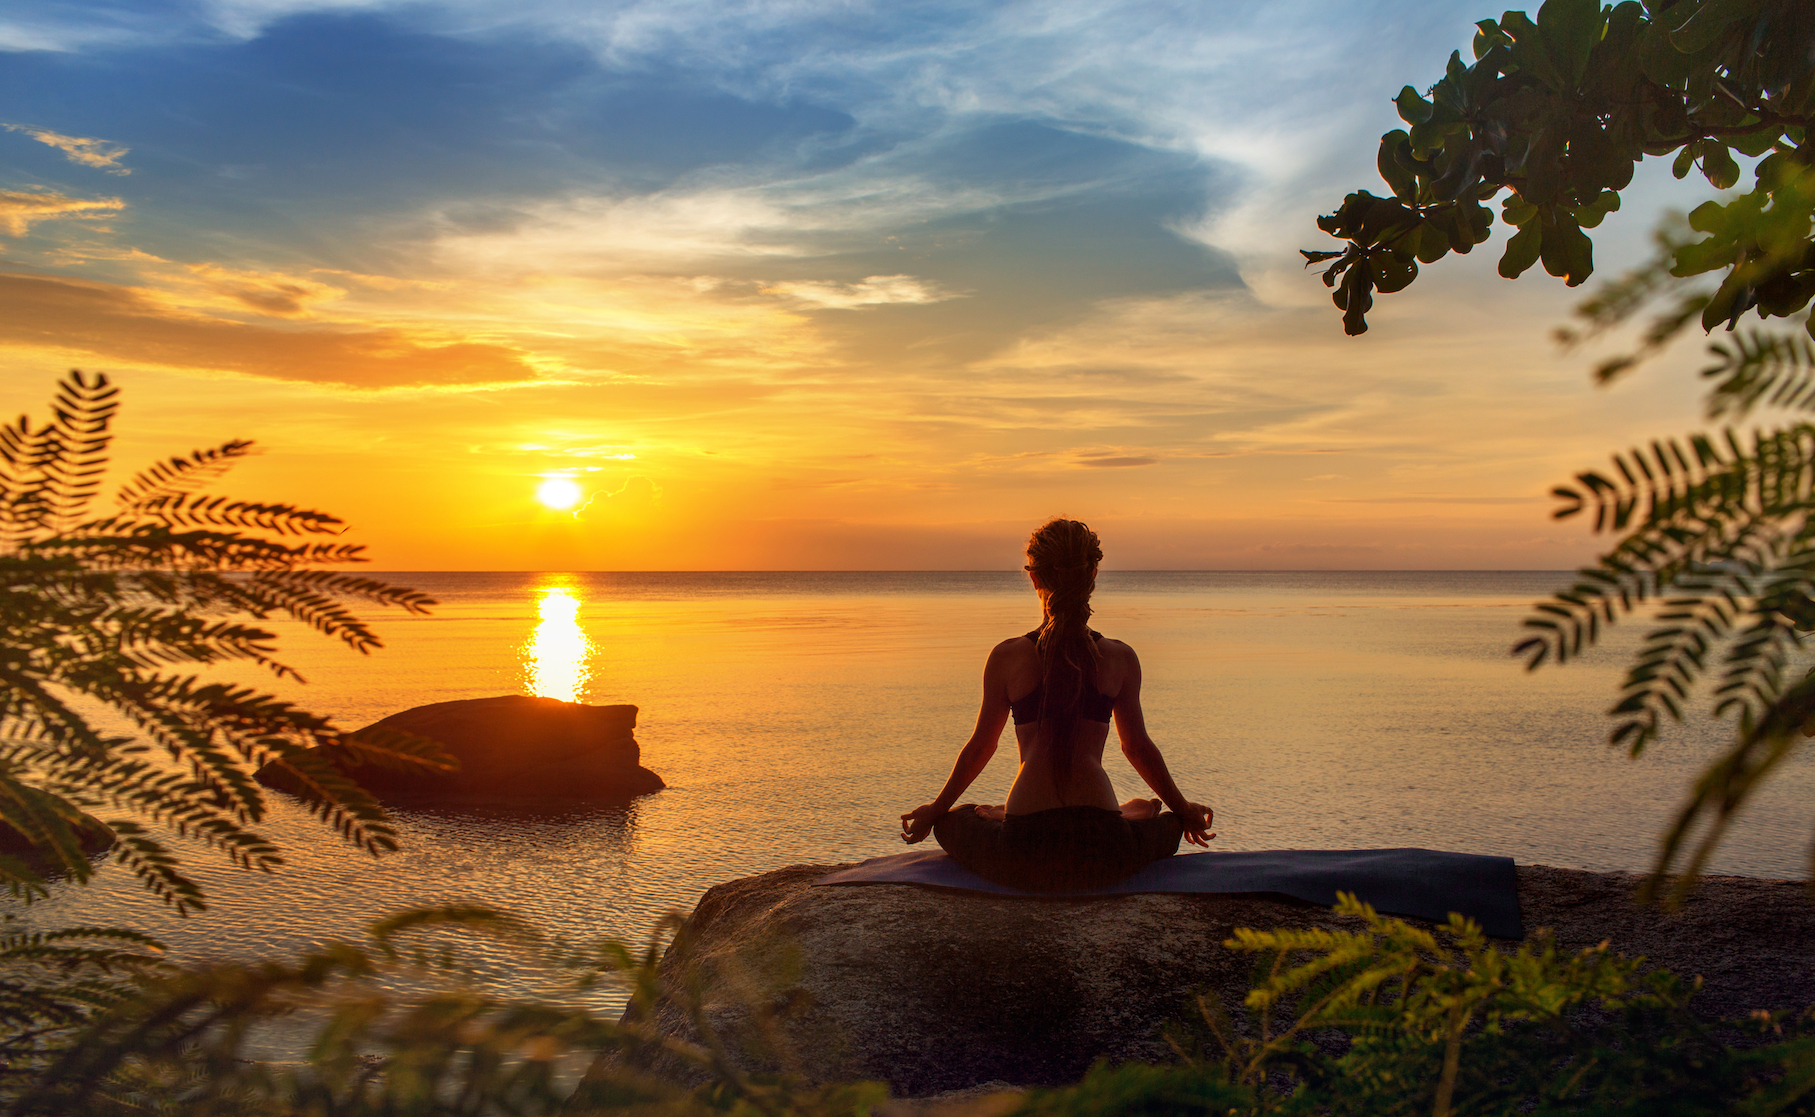 All it takes is 10 minutes of meditation a day to help prevent your mind from wandering, a new study found.